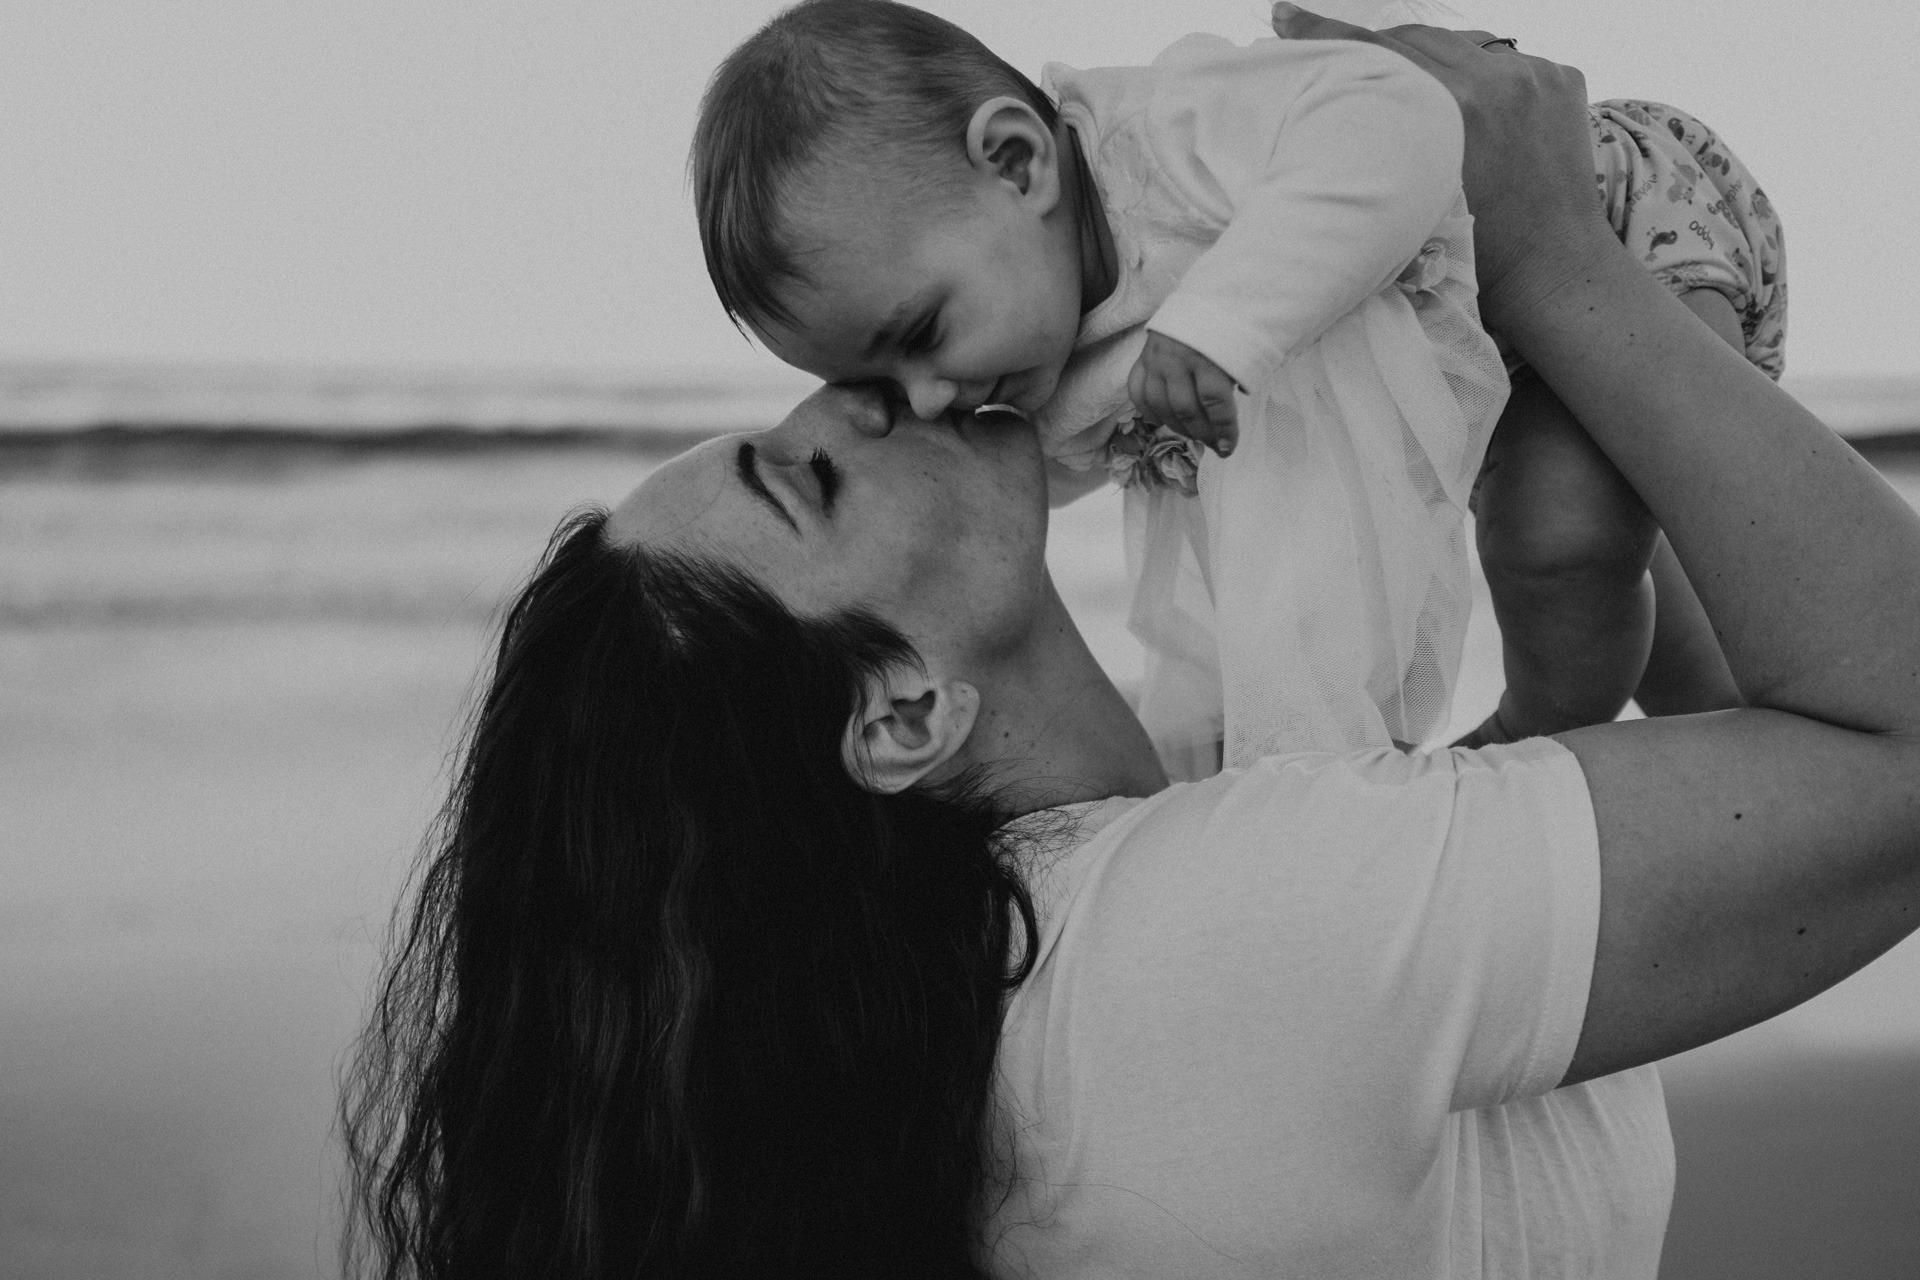 mother and baby on beach kiss